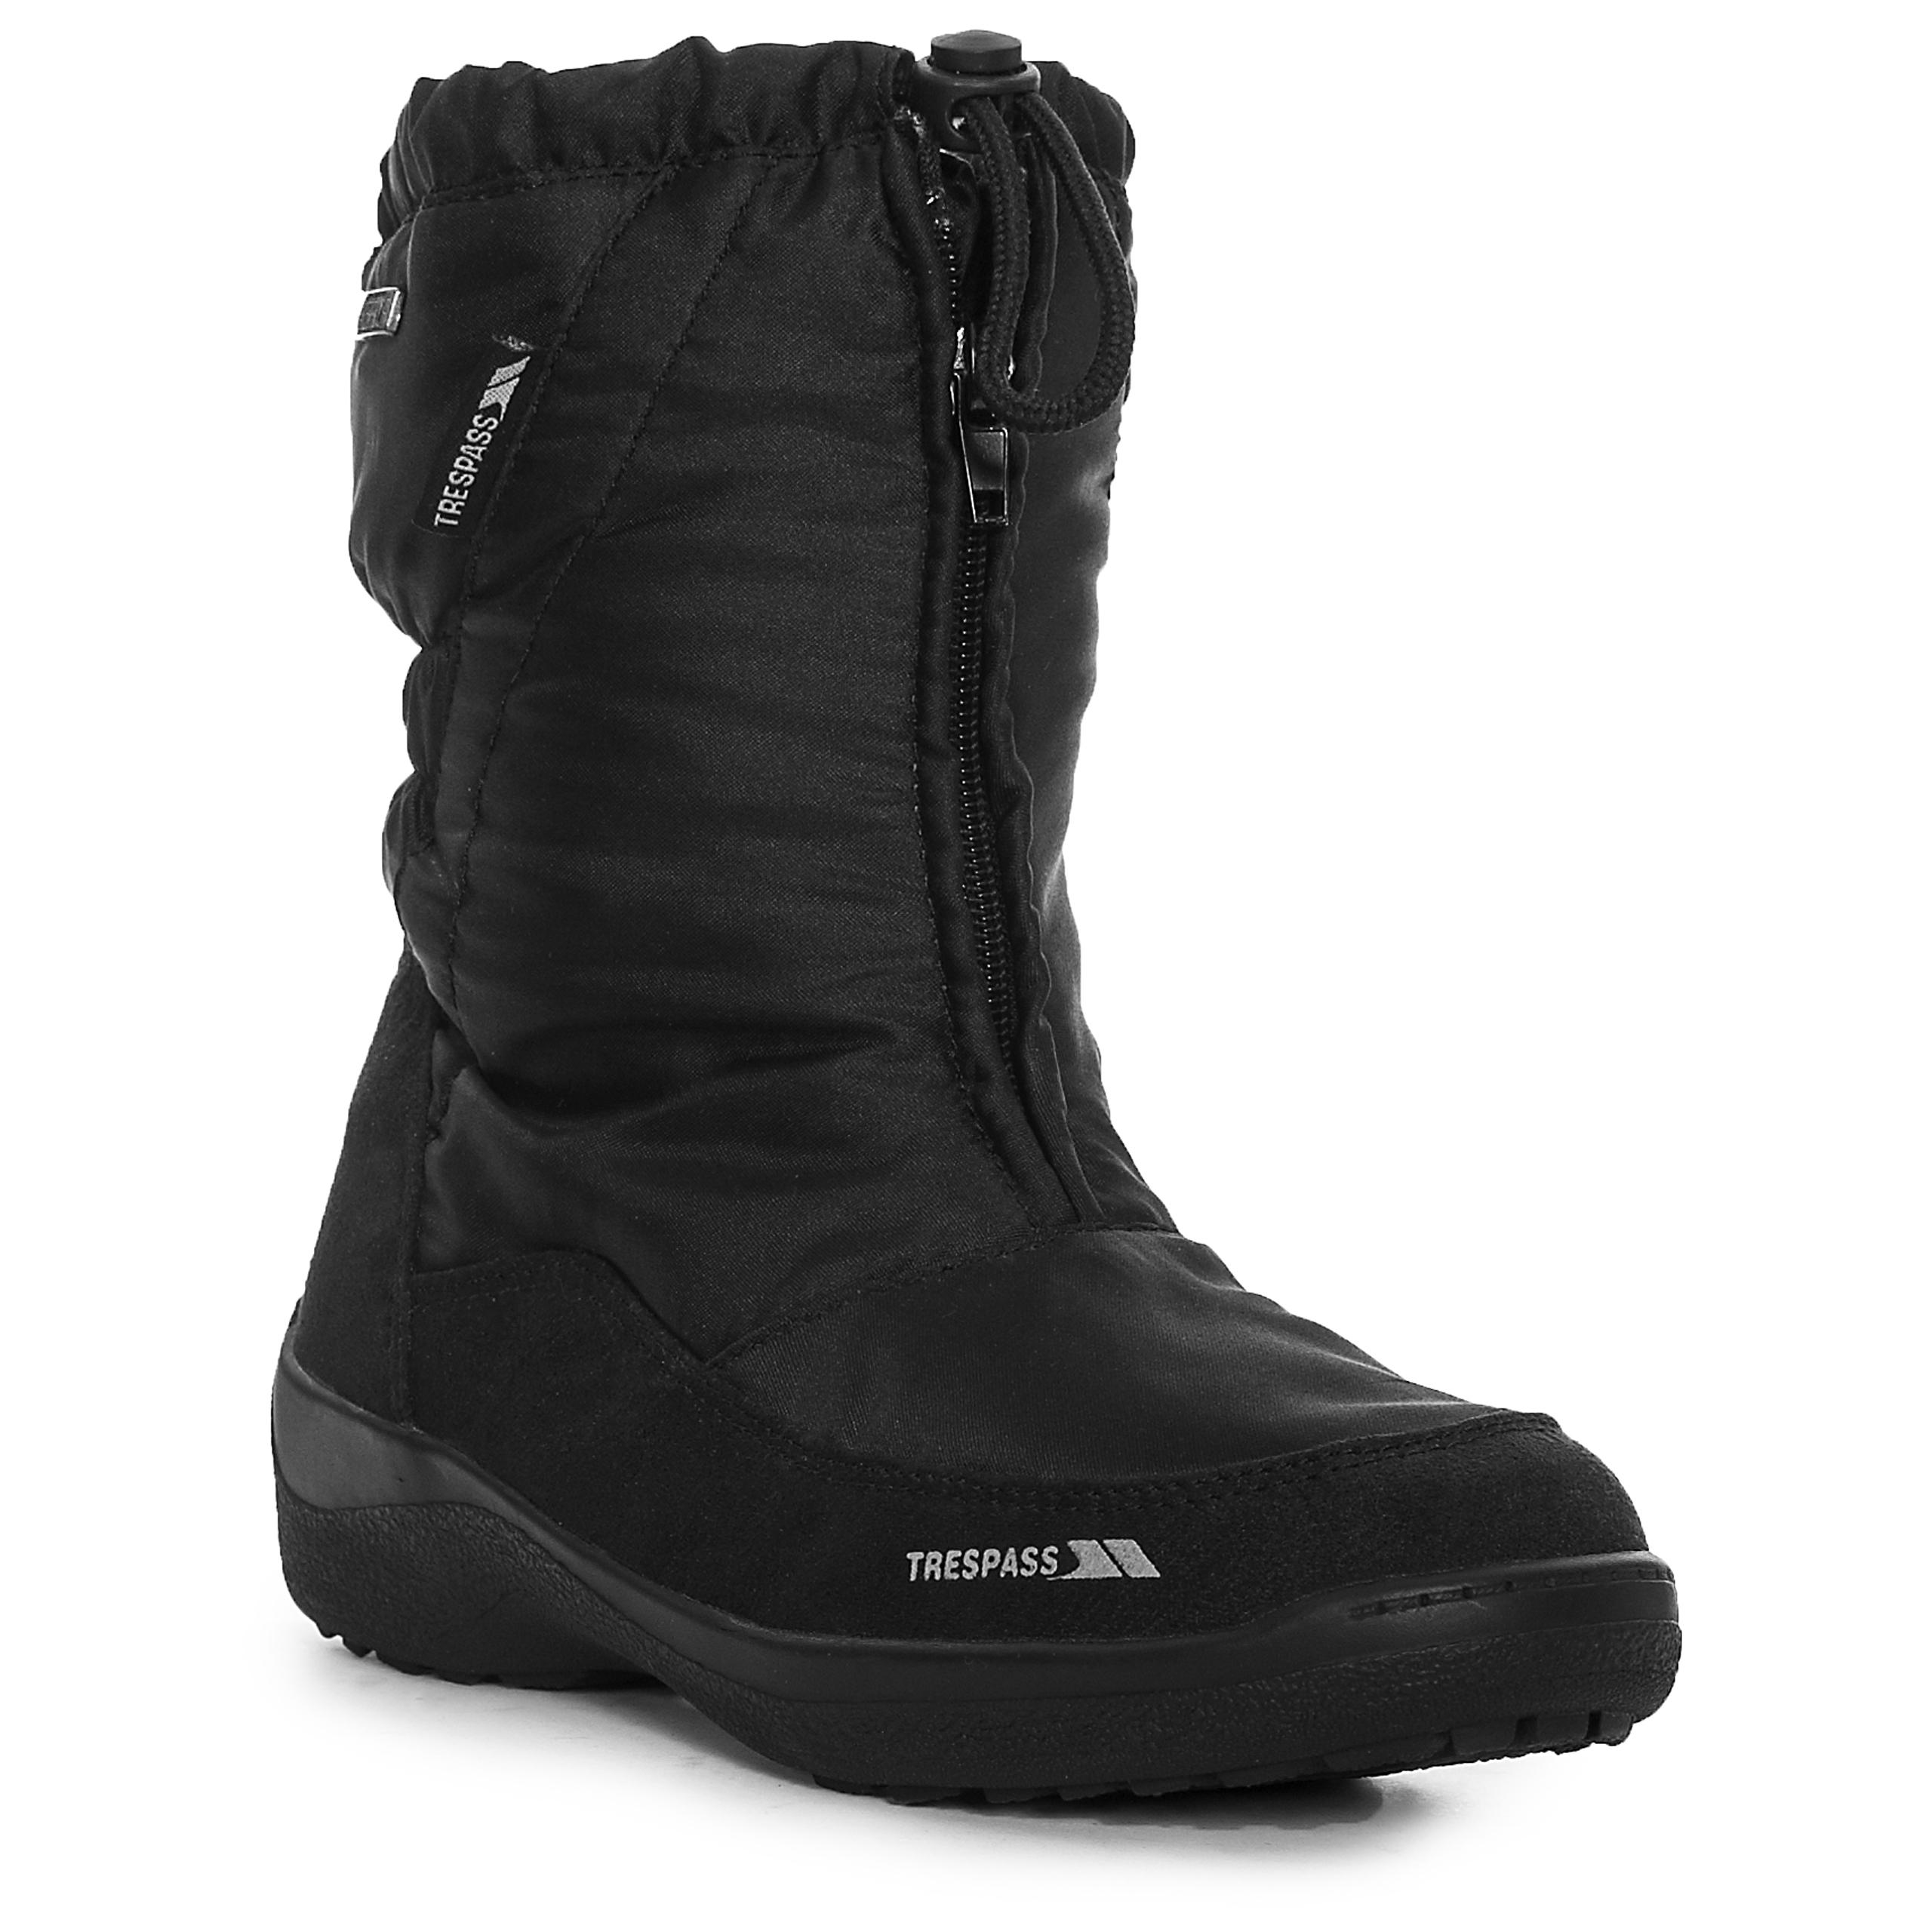 Trespass Lara Womens Ladies Waterproof Winter Snow Shoes Boots | eBay